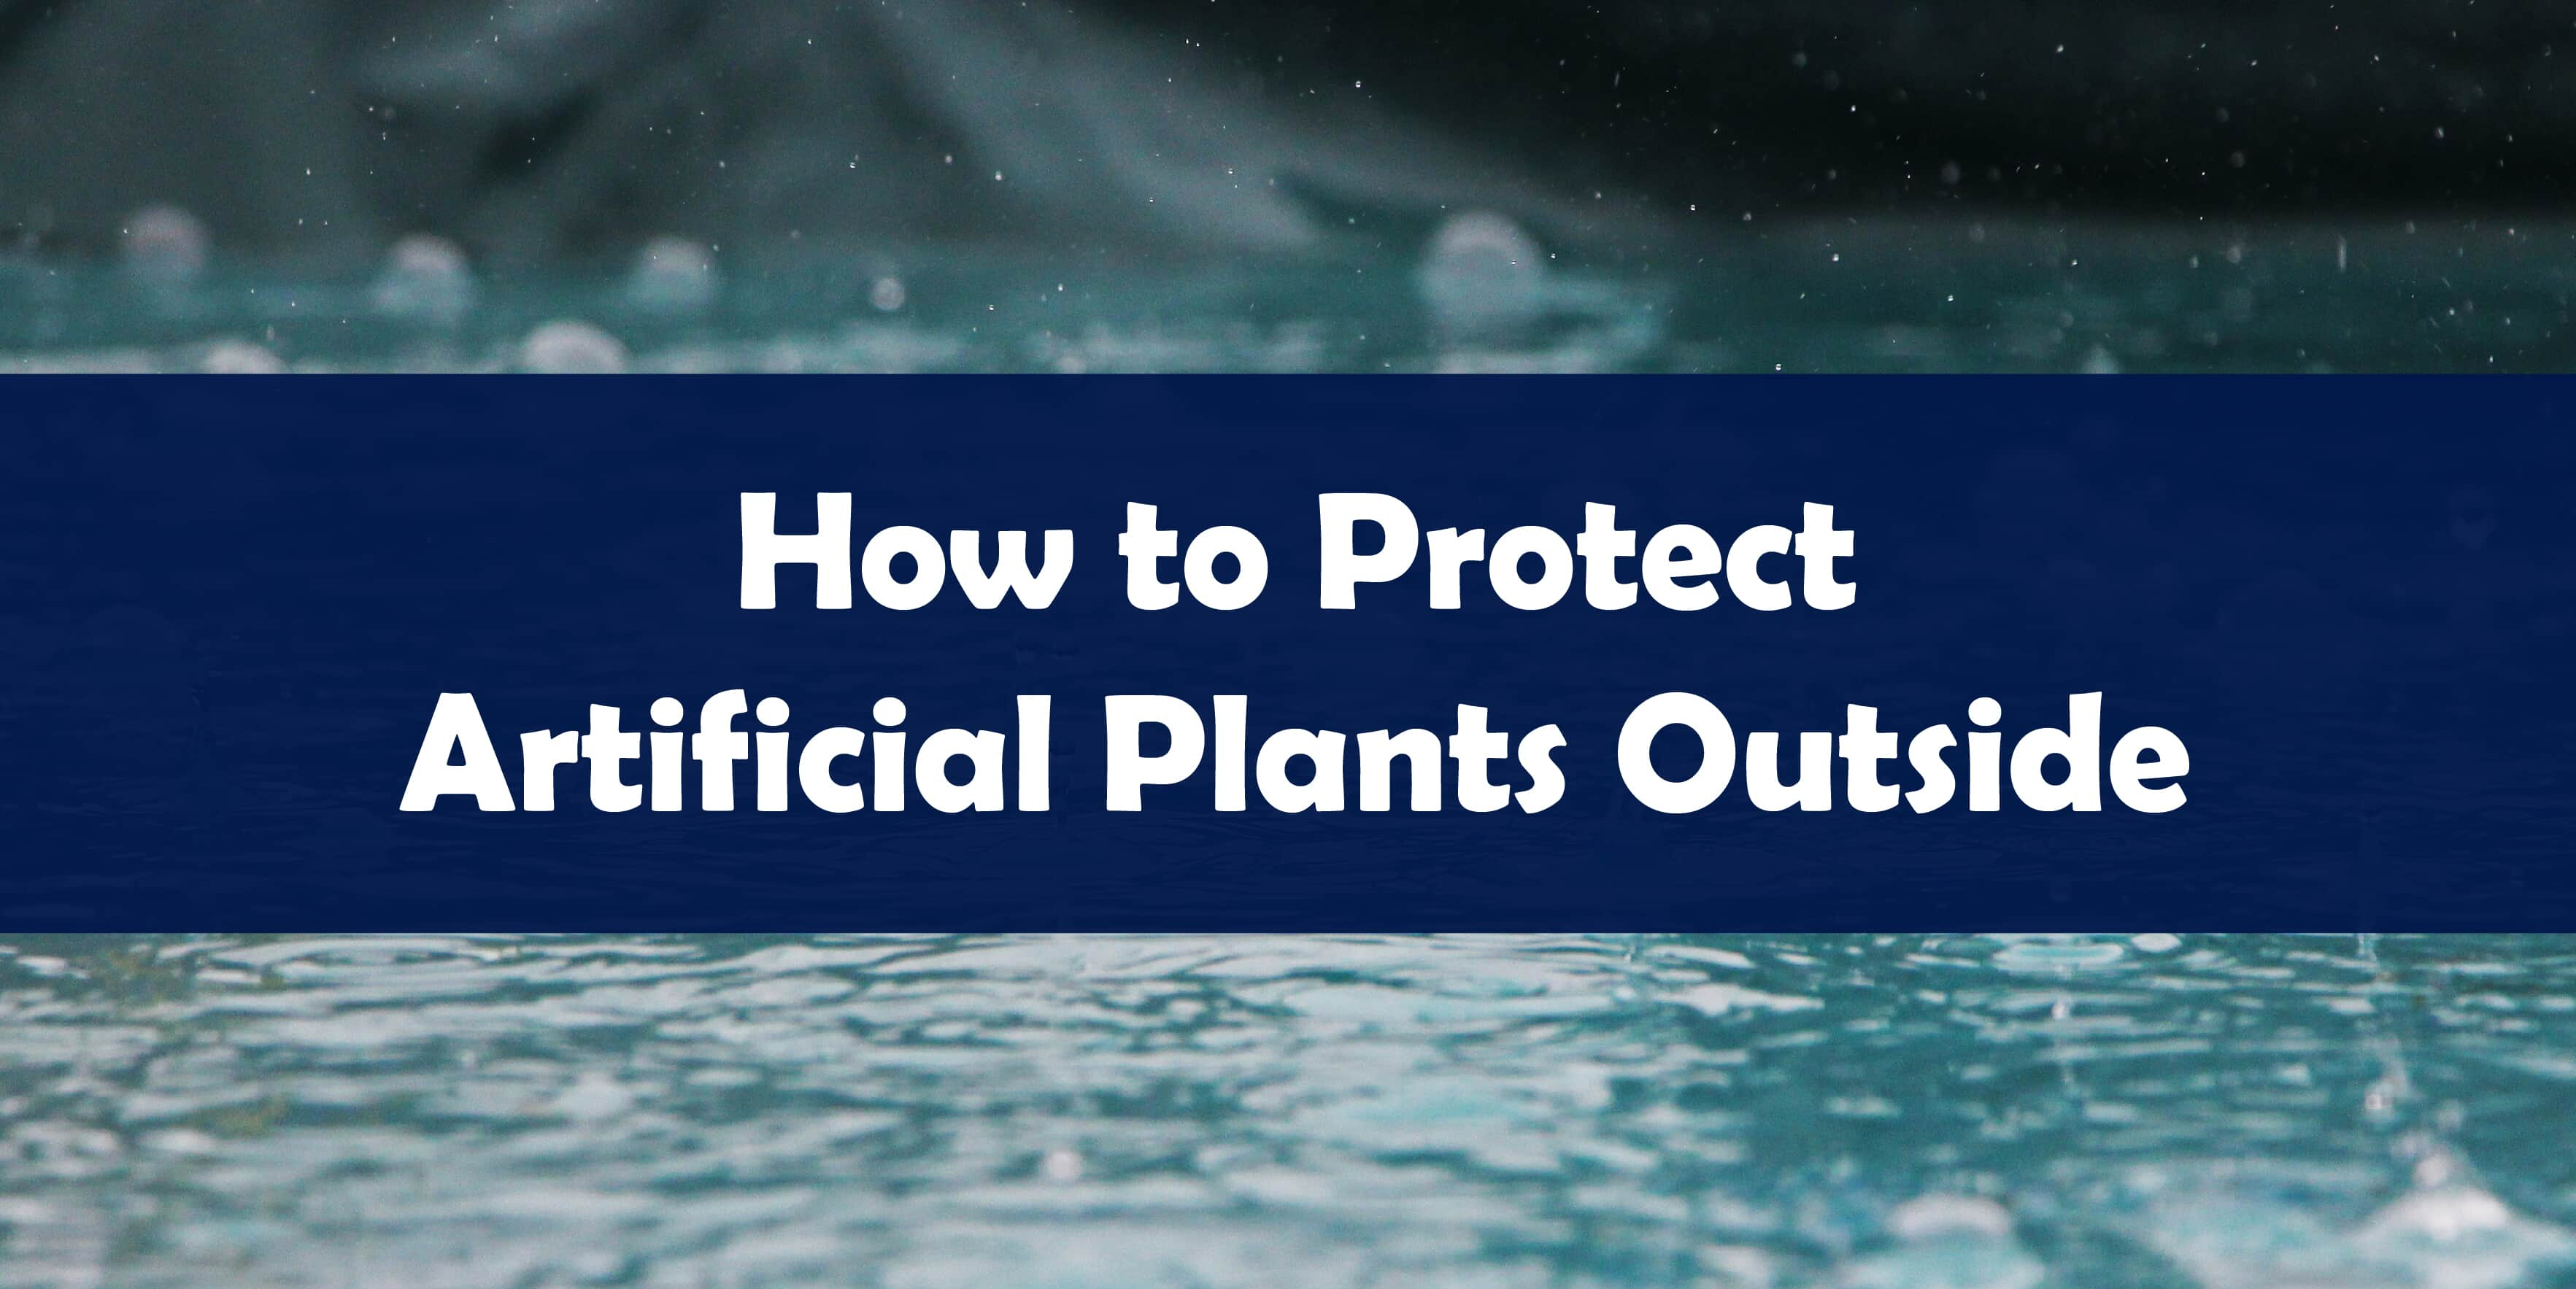 How to Protect Artificial Plants Outside